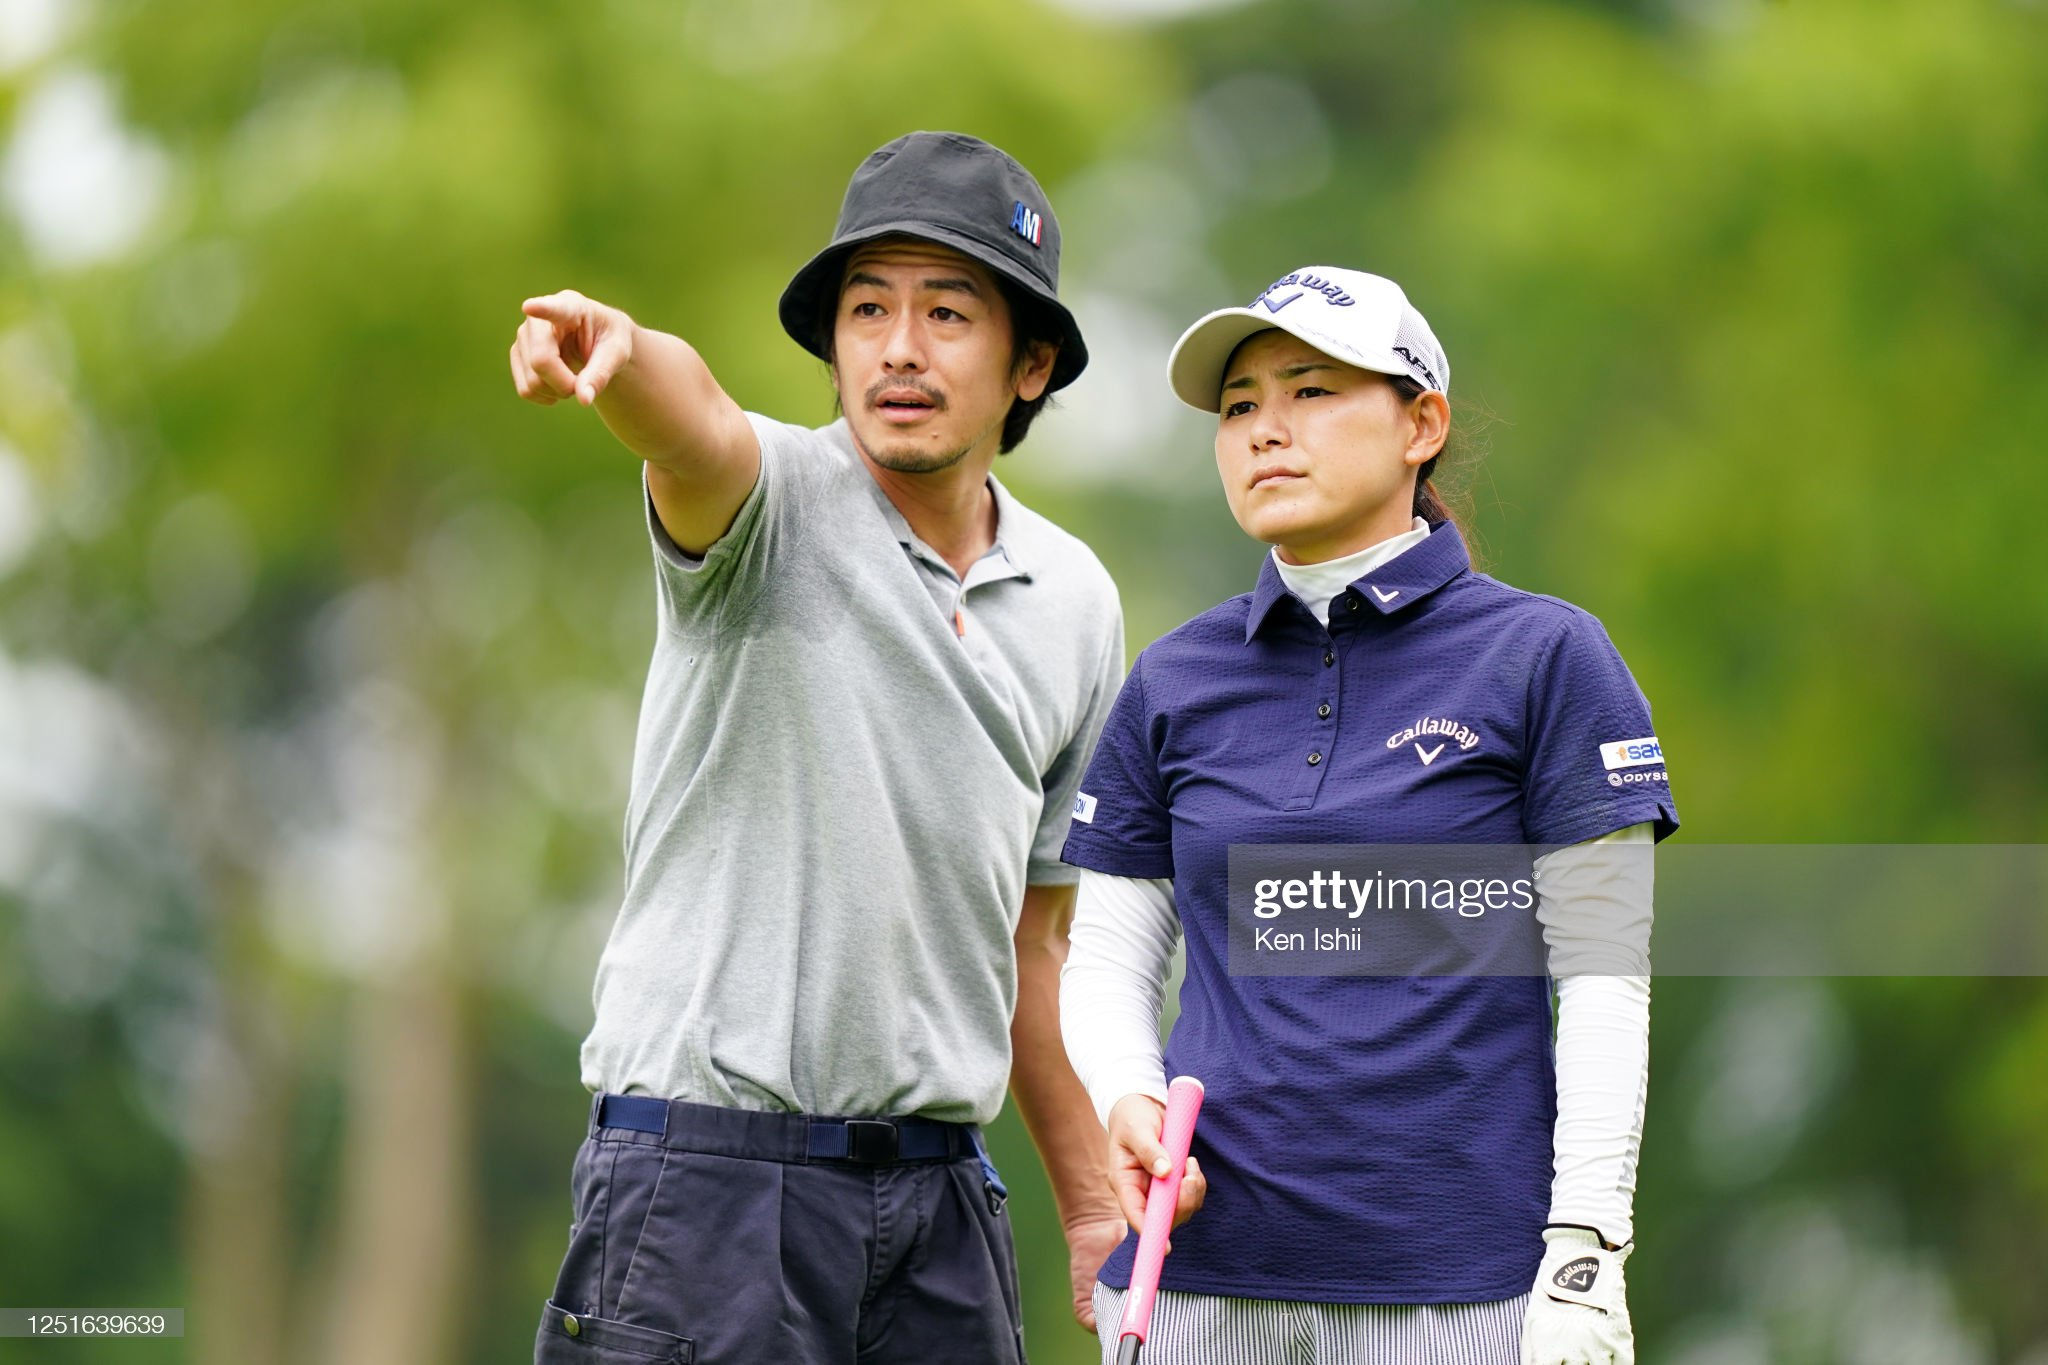 https://media.gettyimages.com/photos/sakura-yokomine-of-japan-discusses-with-her-caddie-and-husband-yotaro-picture-id1251639639?s=2048x2048